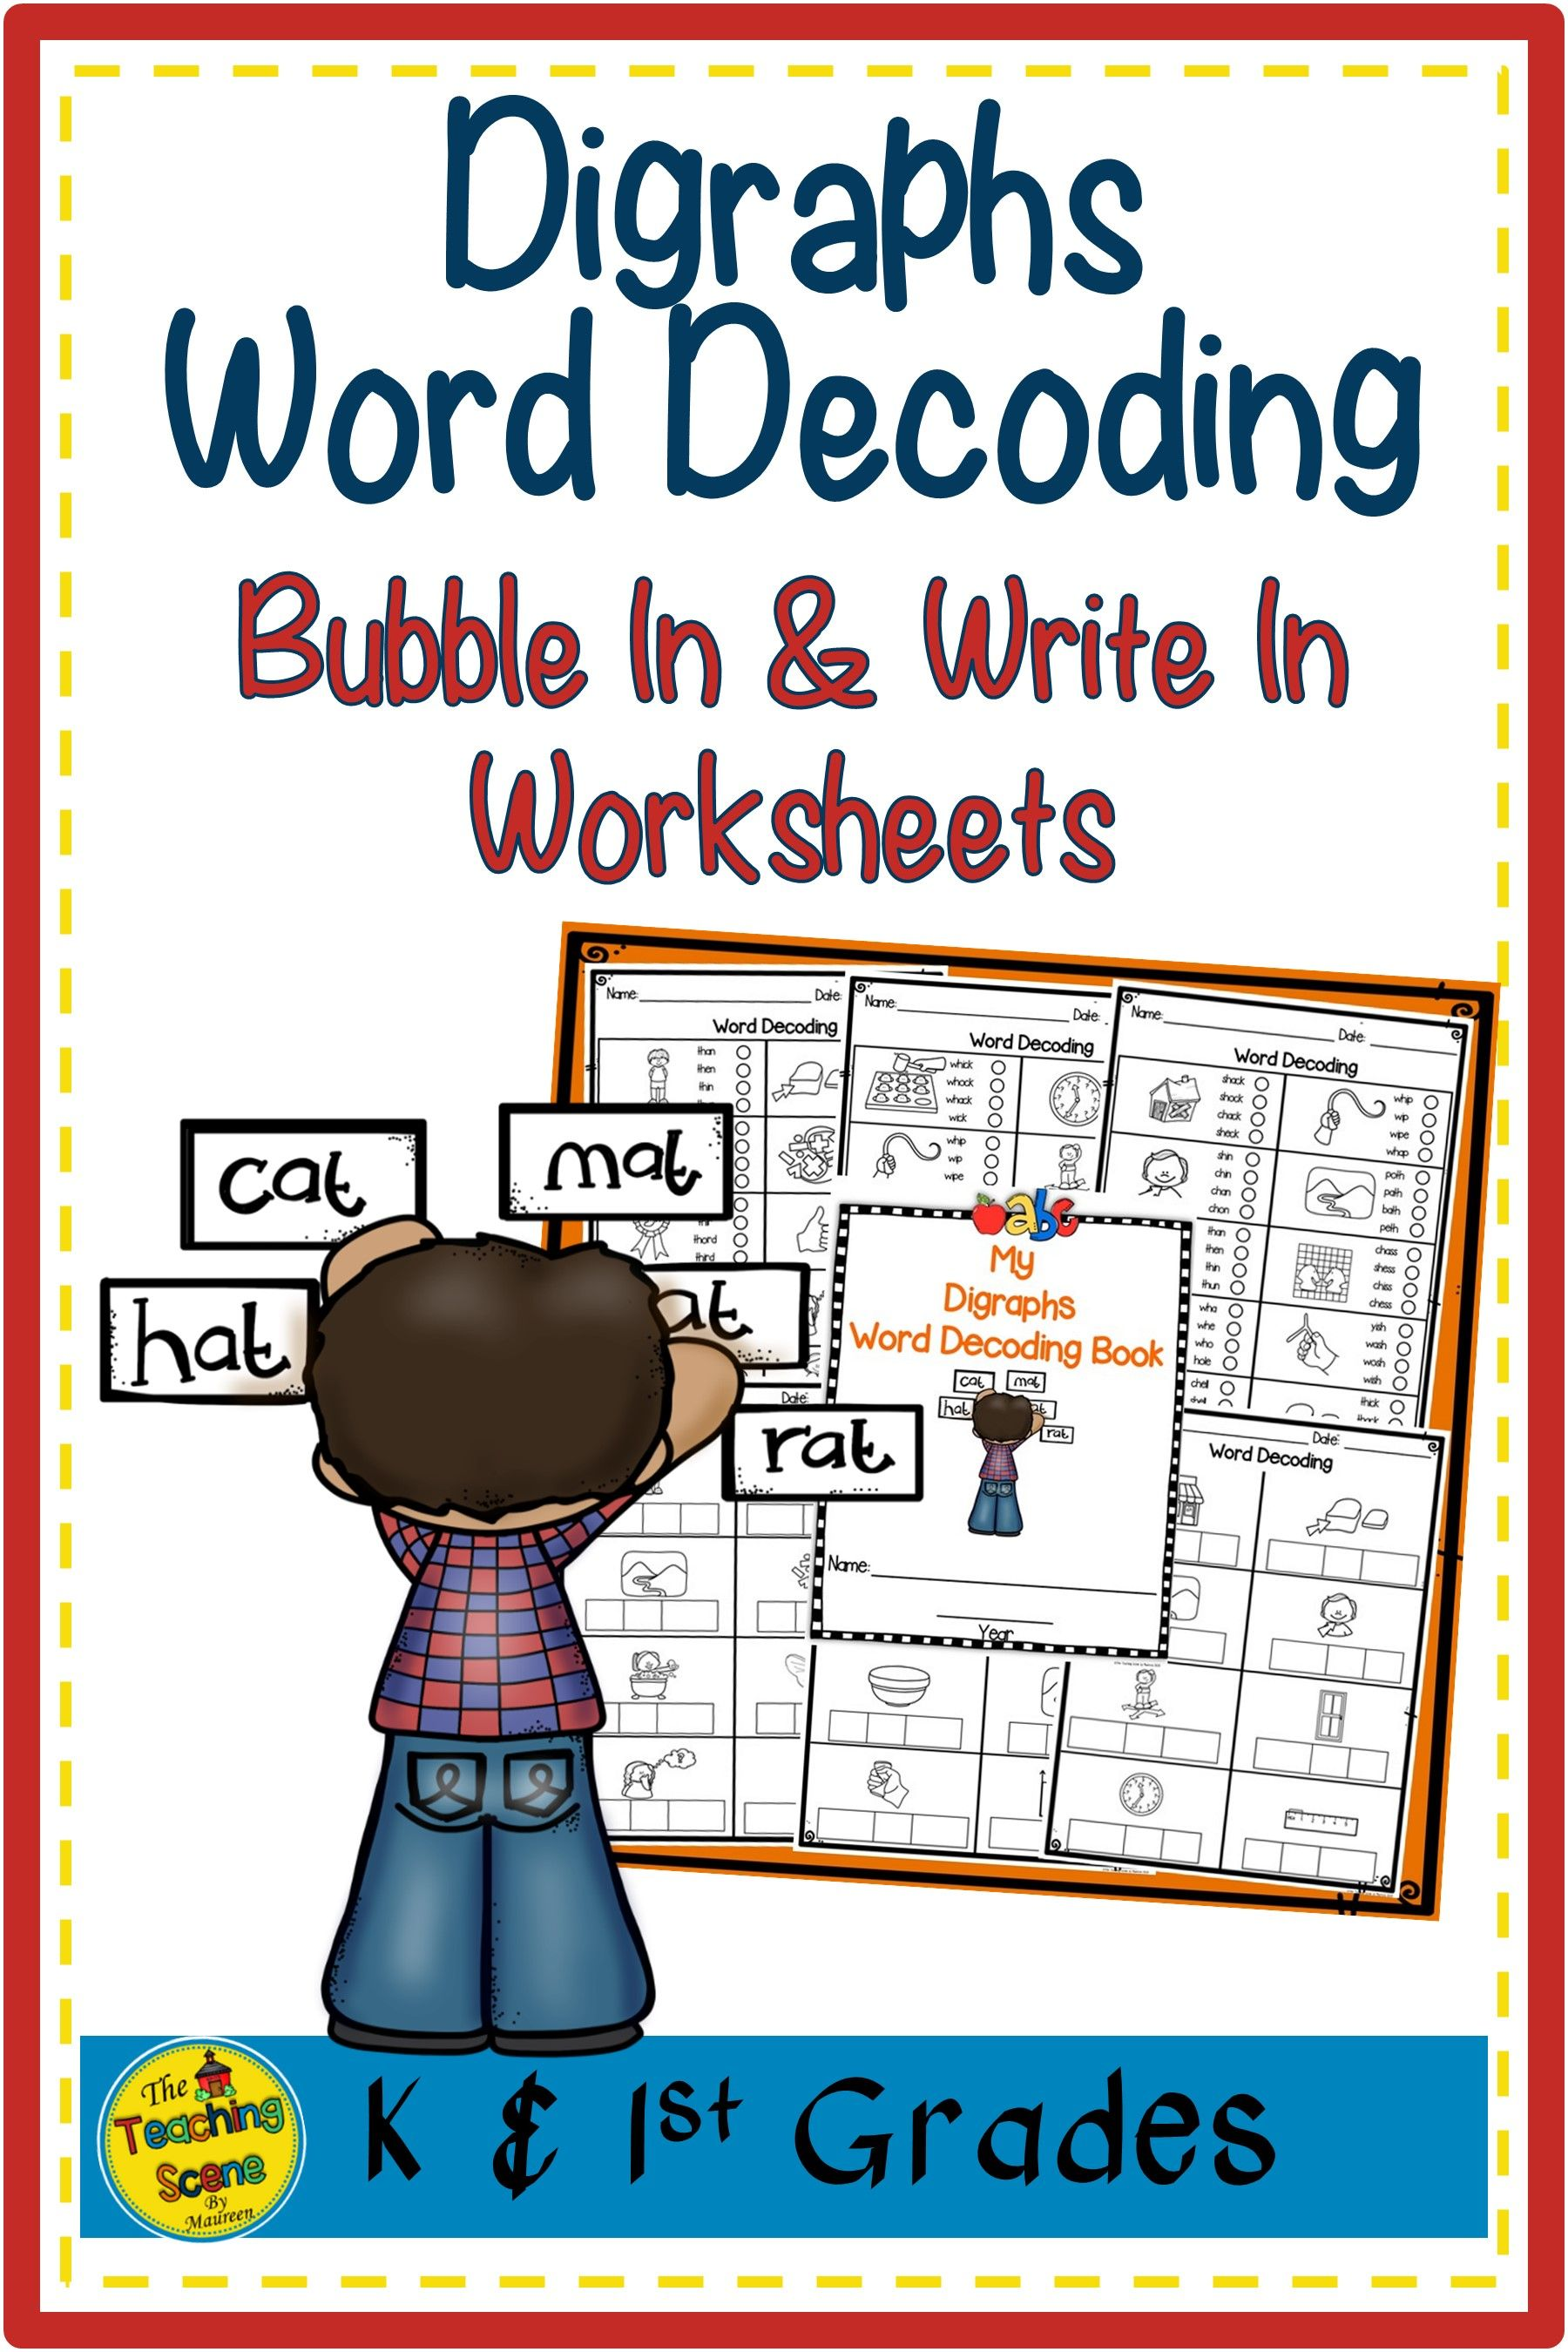 Digraphs Word Decoding Worksheets Amp Assessments